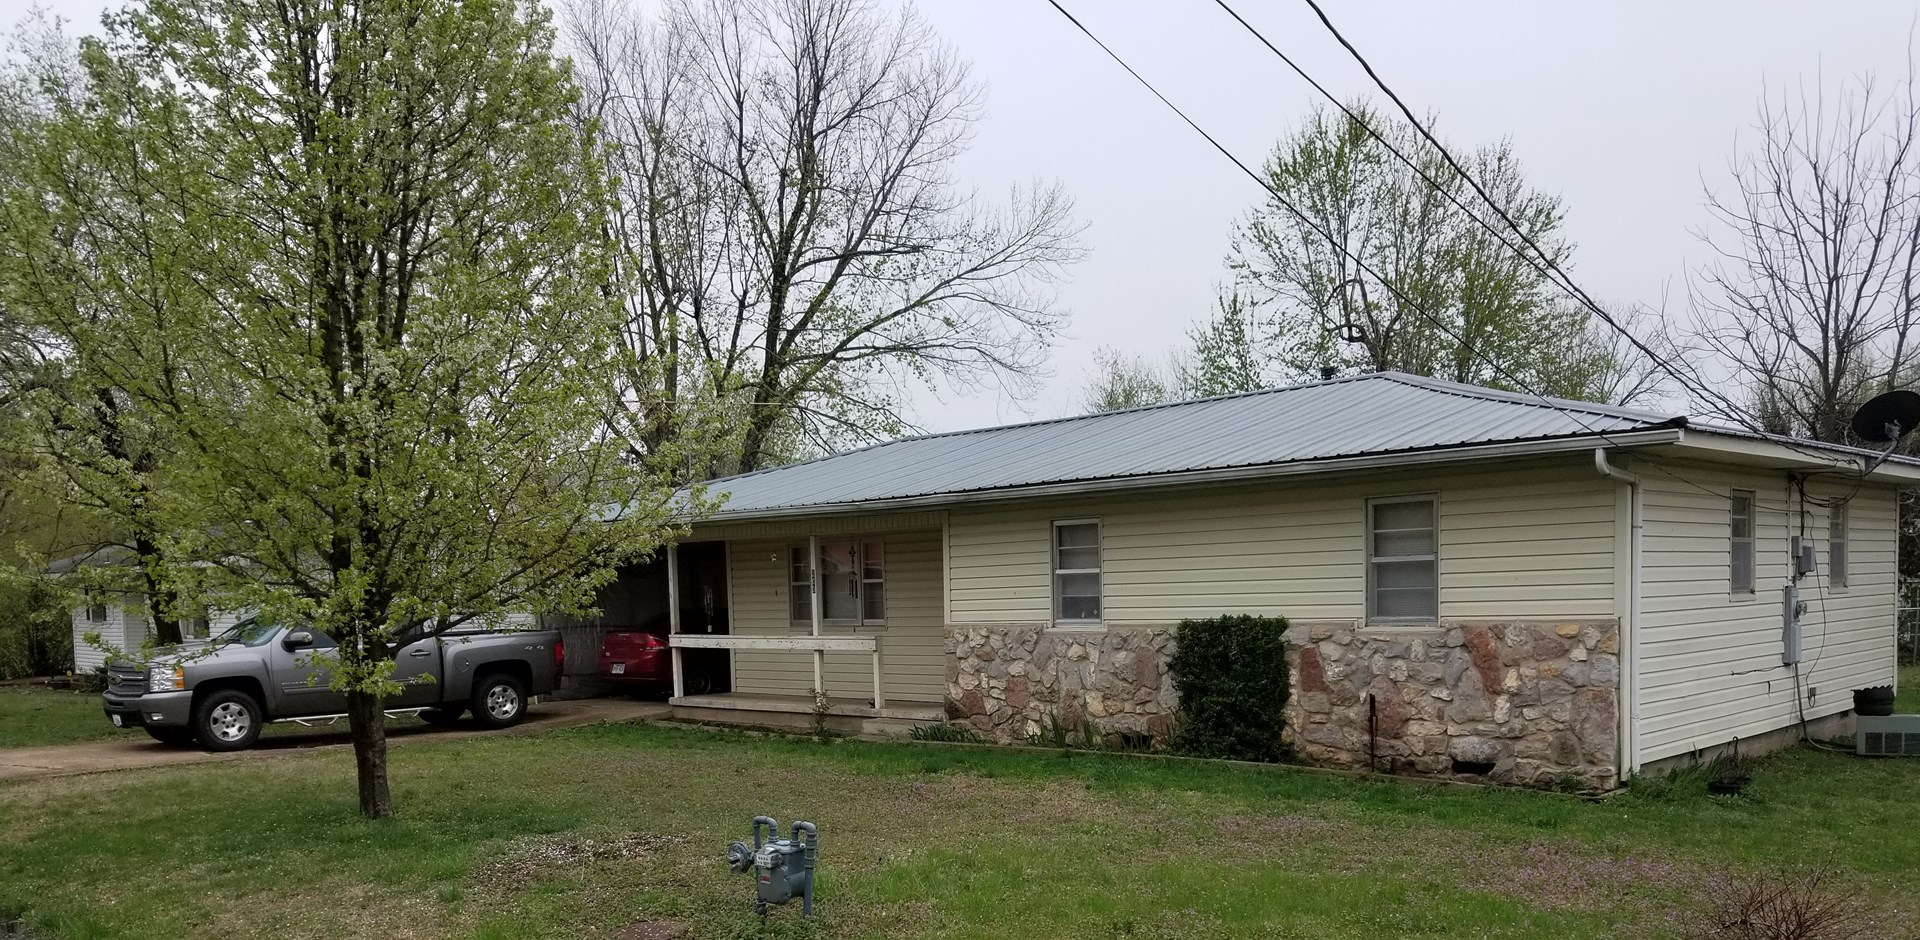 Affordable home in Berryville - Carroll County for sale